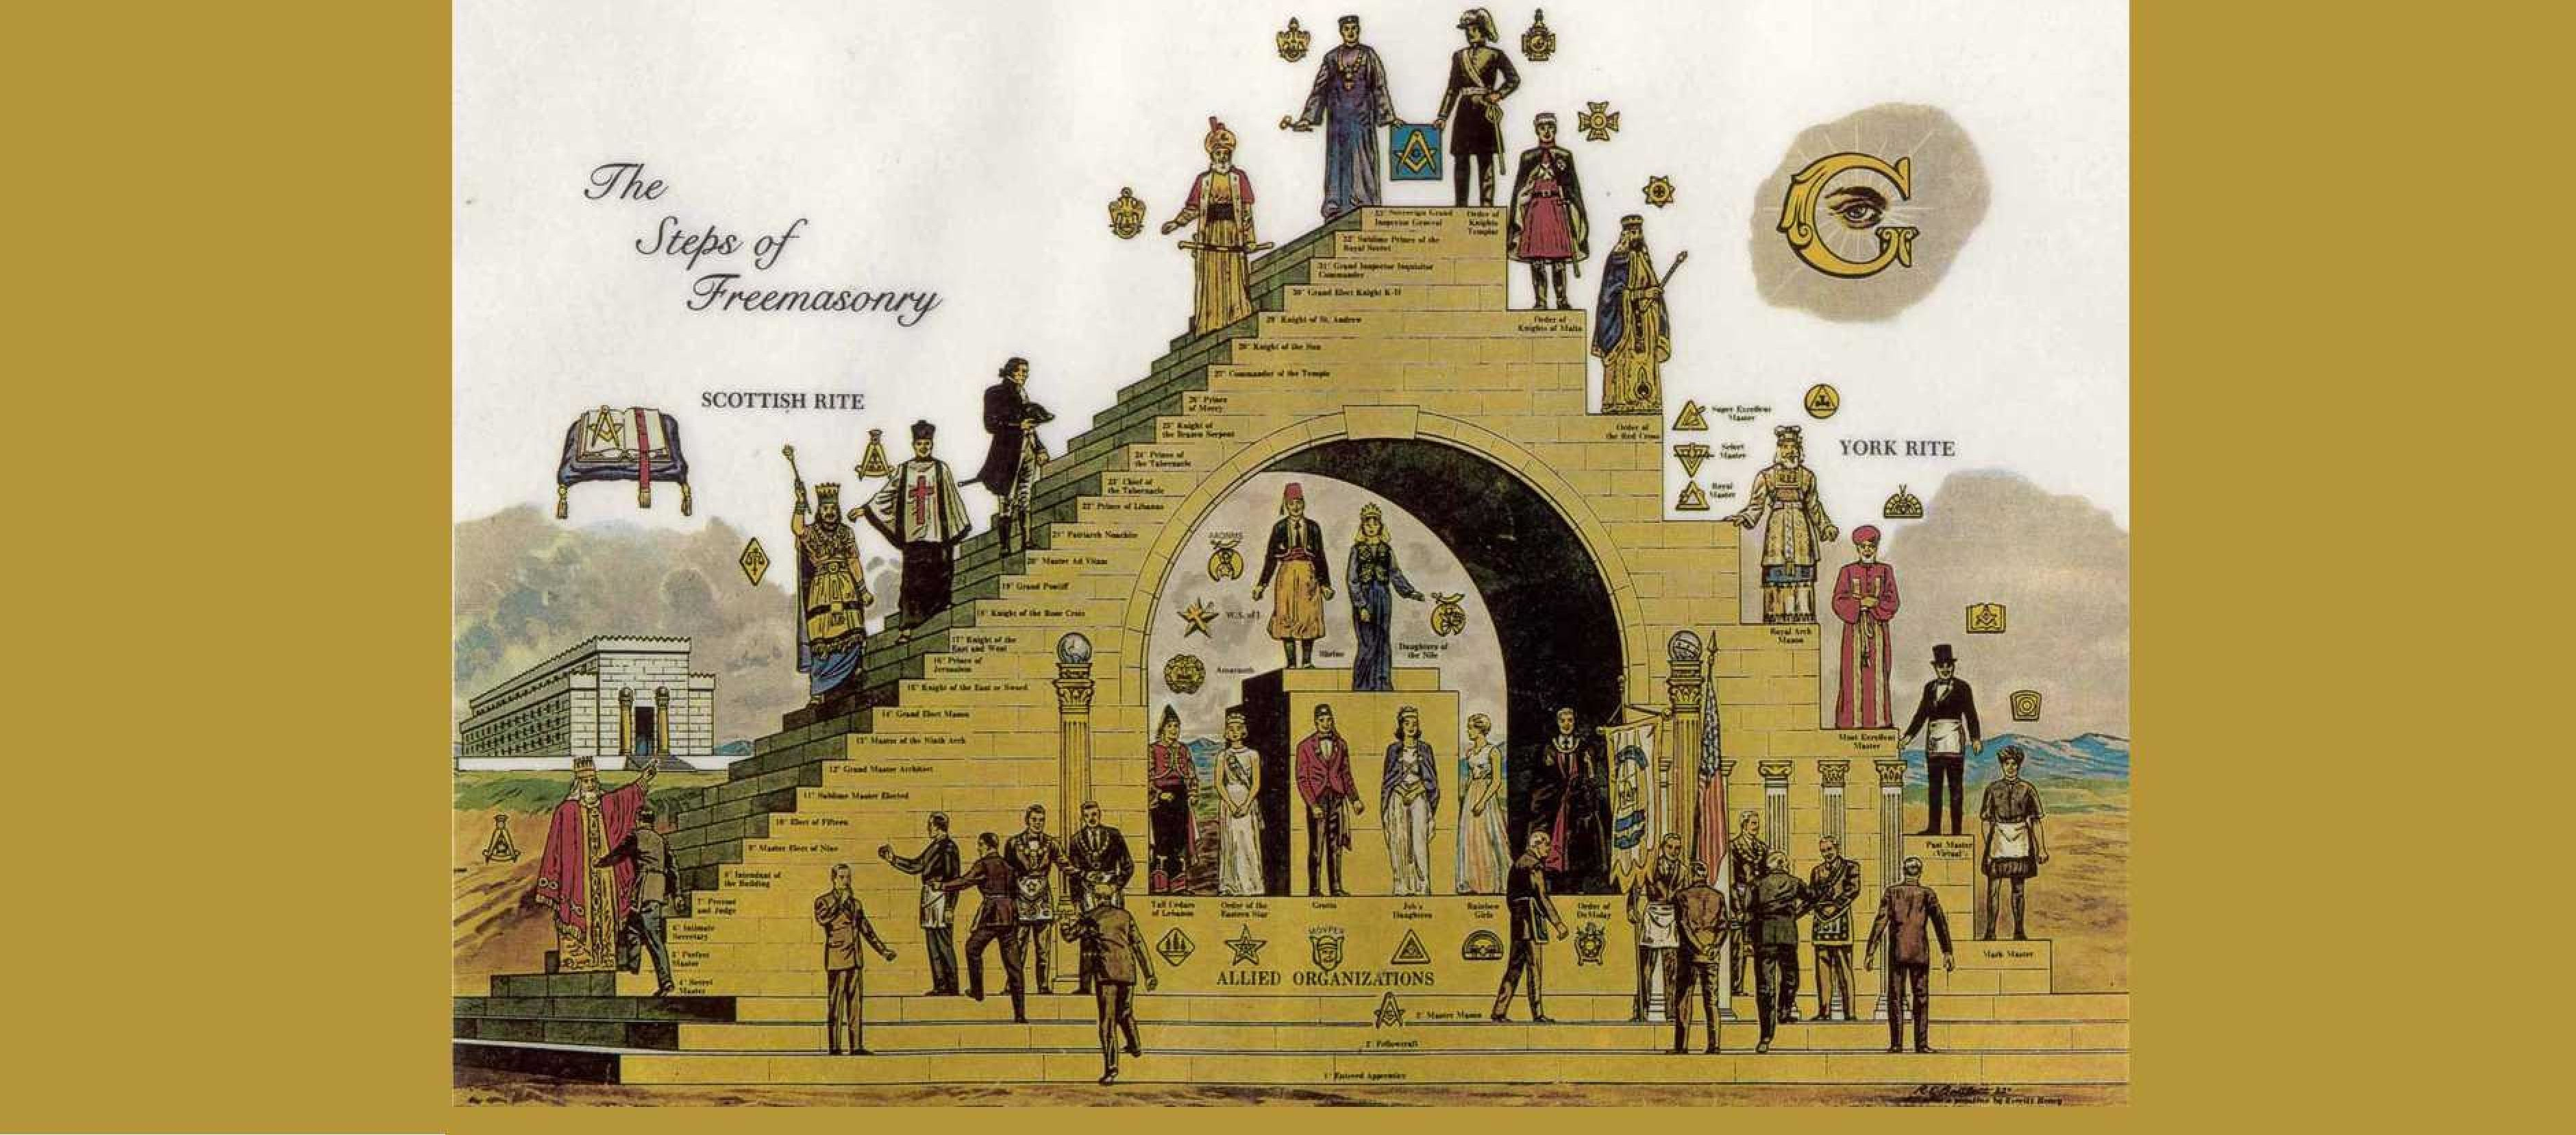 3760x1656 The Steps of Freemasonry